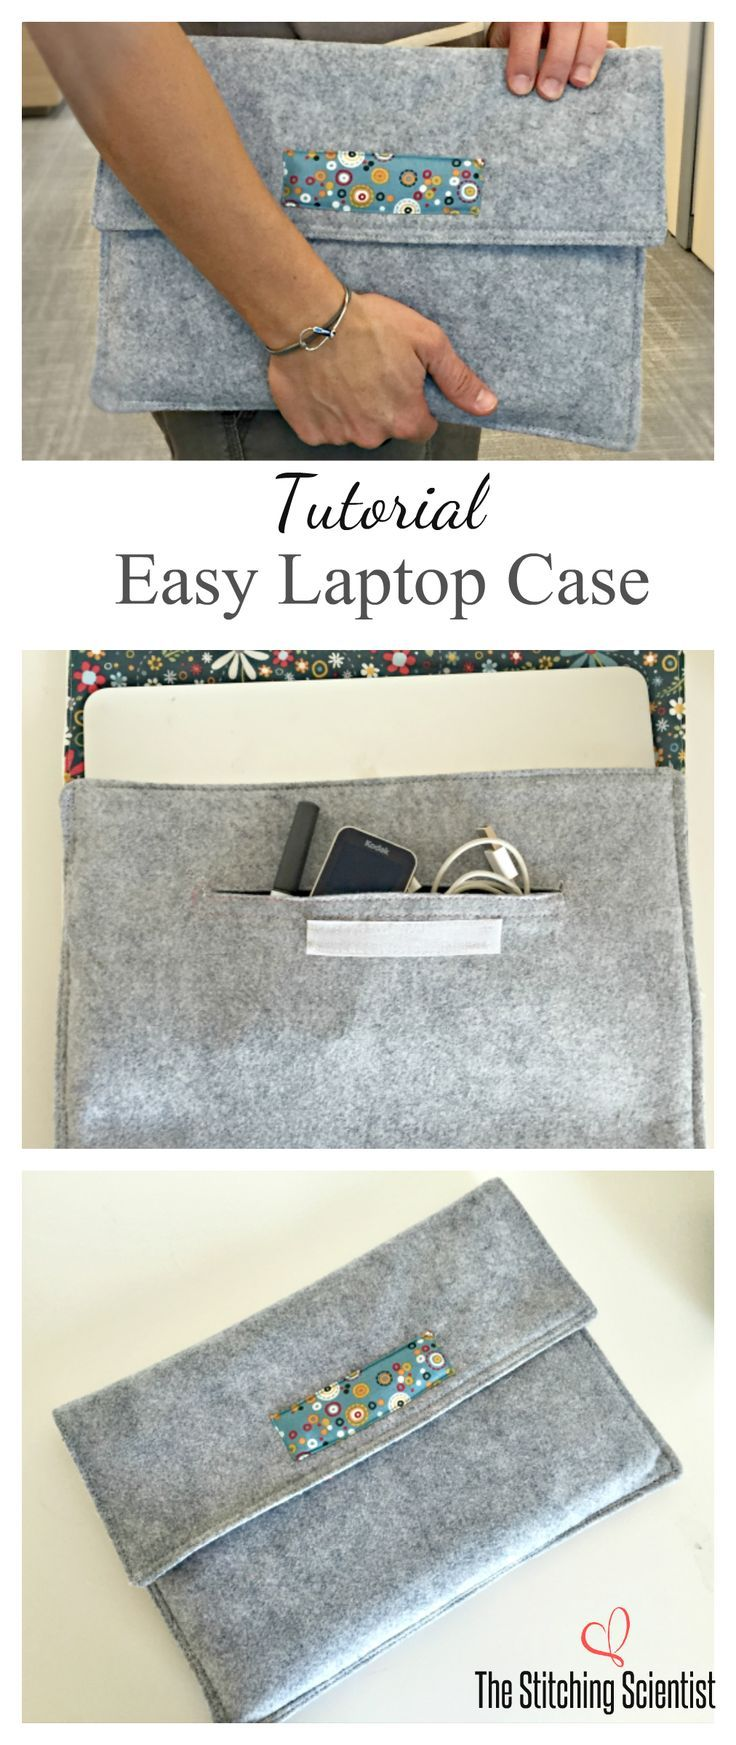 laptop case tutorial - nice bag brands, large bags, dark brown clutch bag *sponsored https://www.pinterest.com/bags_bag/ https://www.pinterest.com/explore/bags/ https://www.pinterest.com/bags_bag/luxury-bags/ http://www.zappos.com/bags